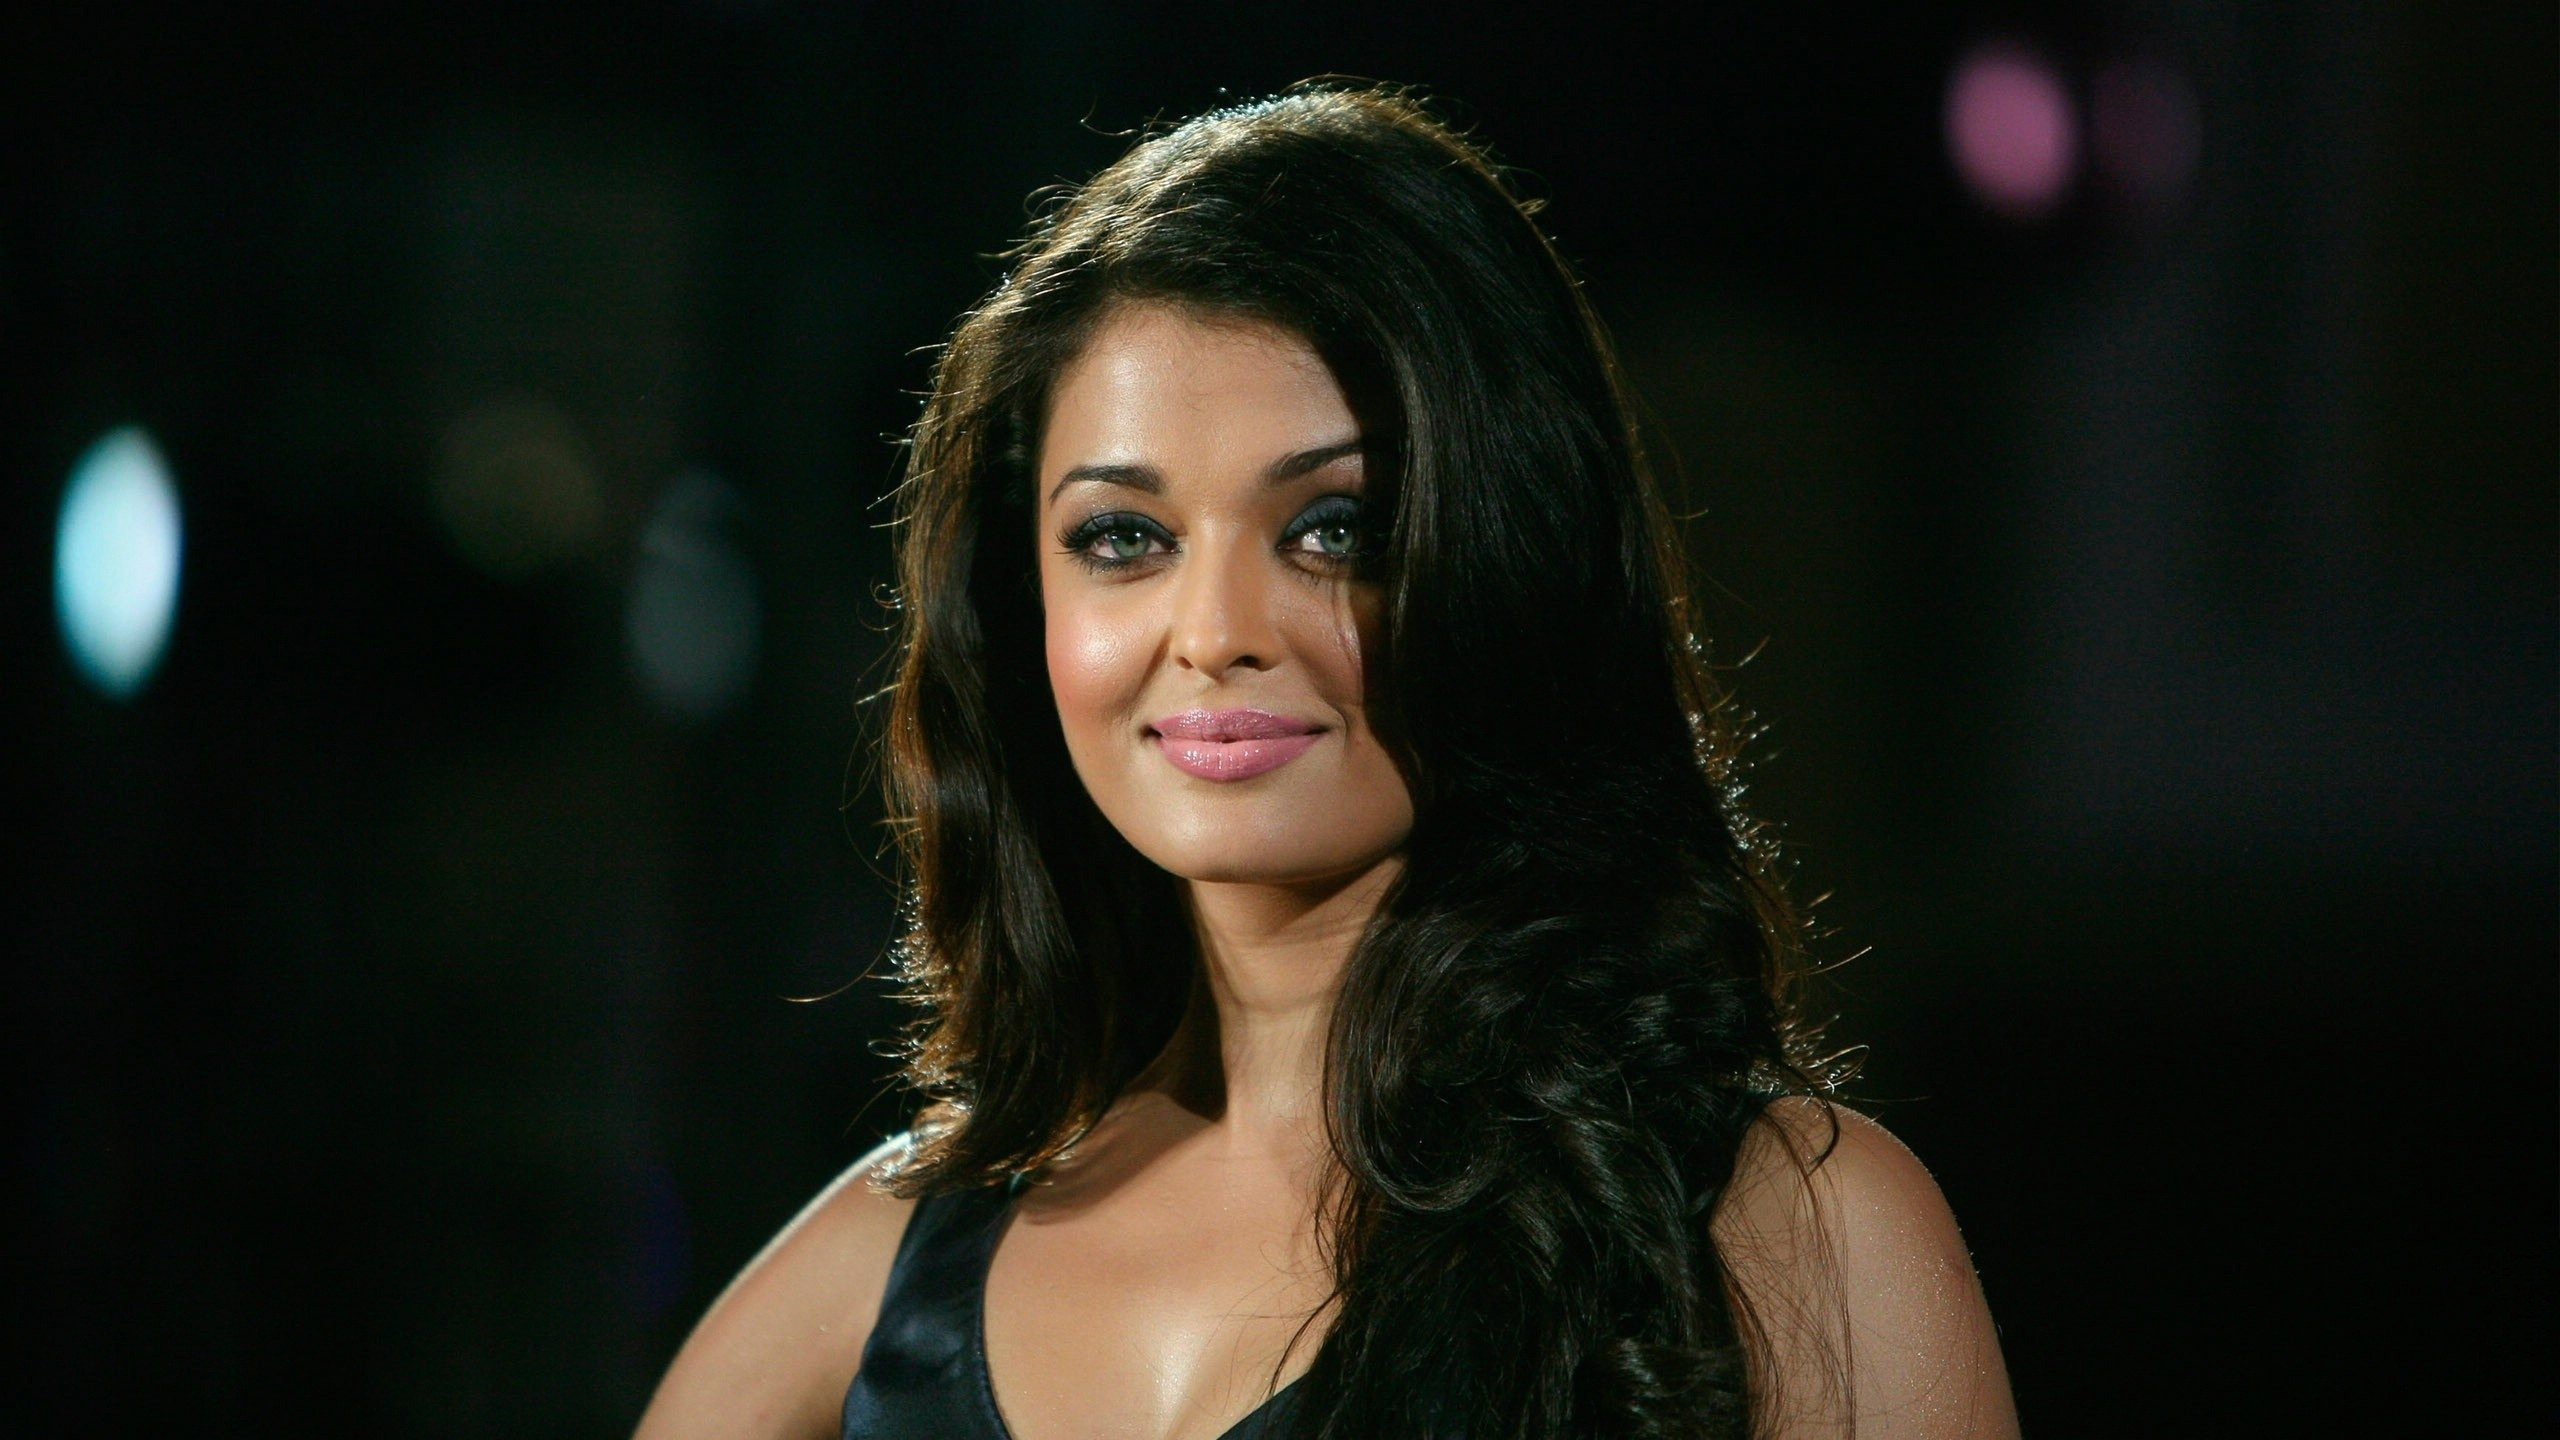 Aishwarya Rai Cute Smile Hd Wallpaper